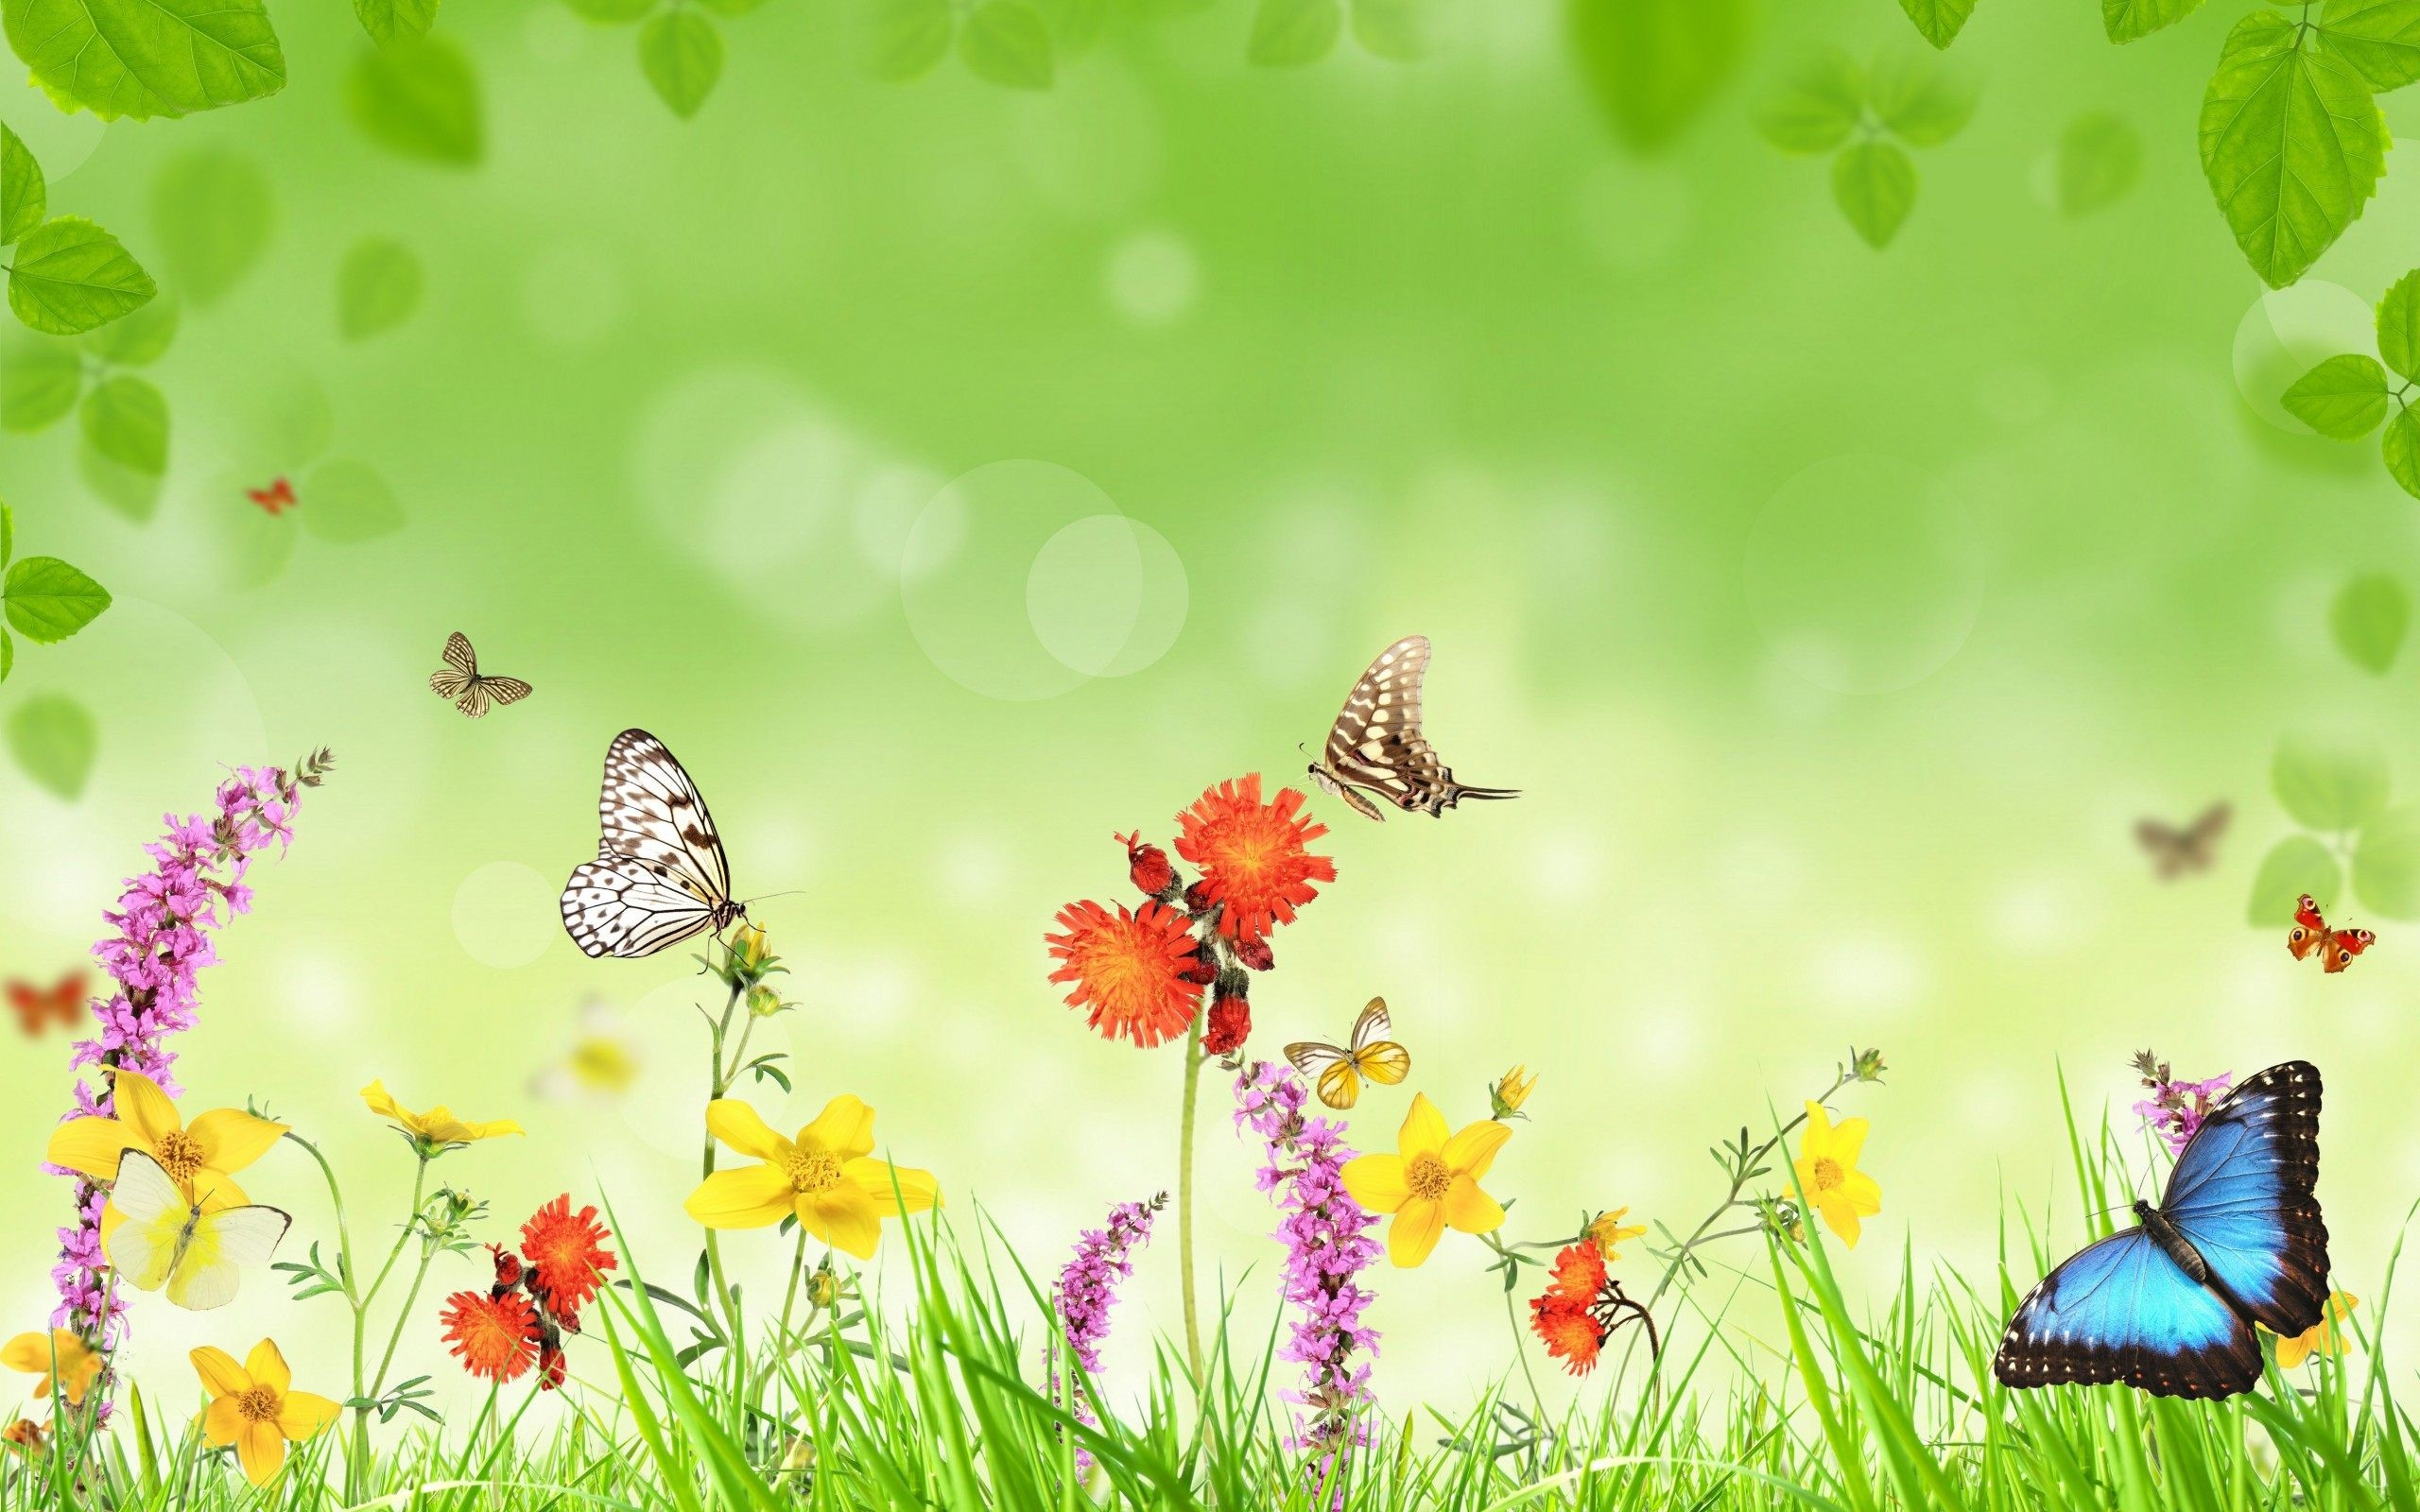 Butterfly wallpaper ·① Download free beautiful full HD ...